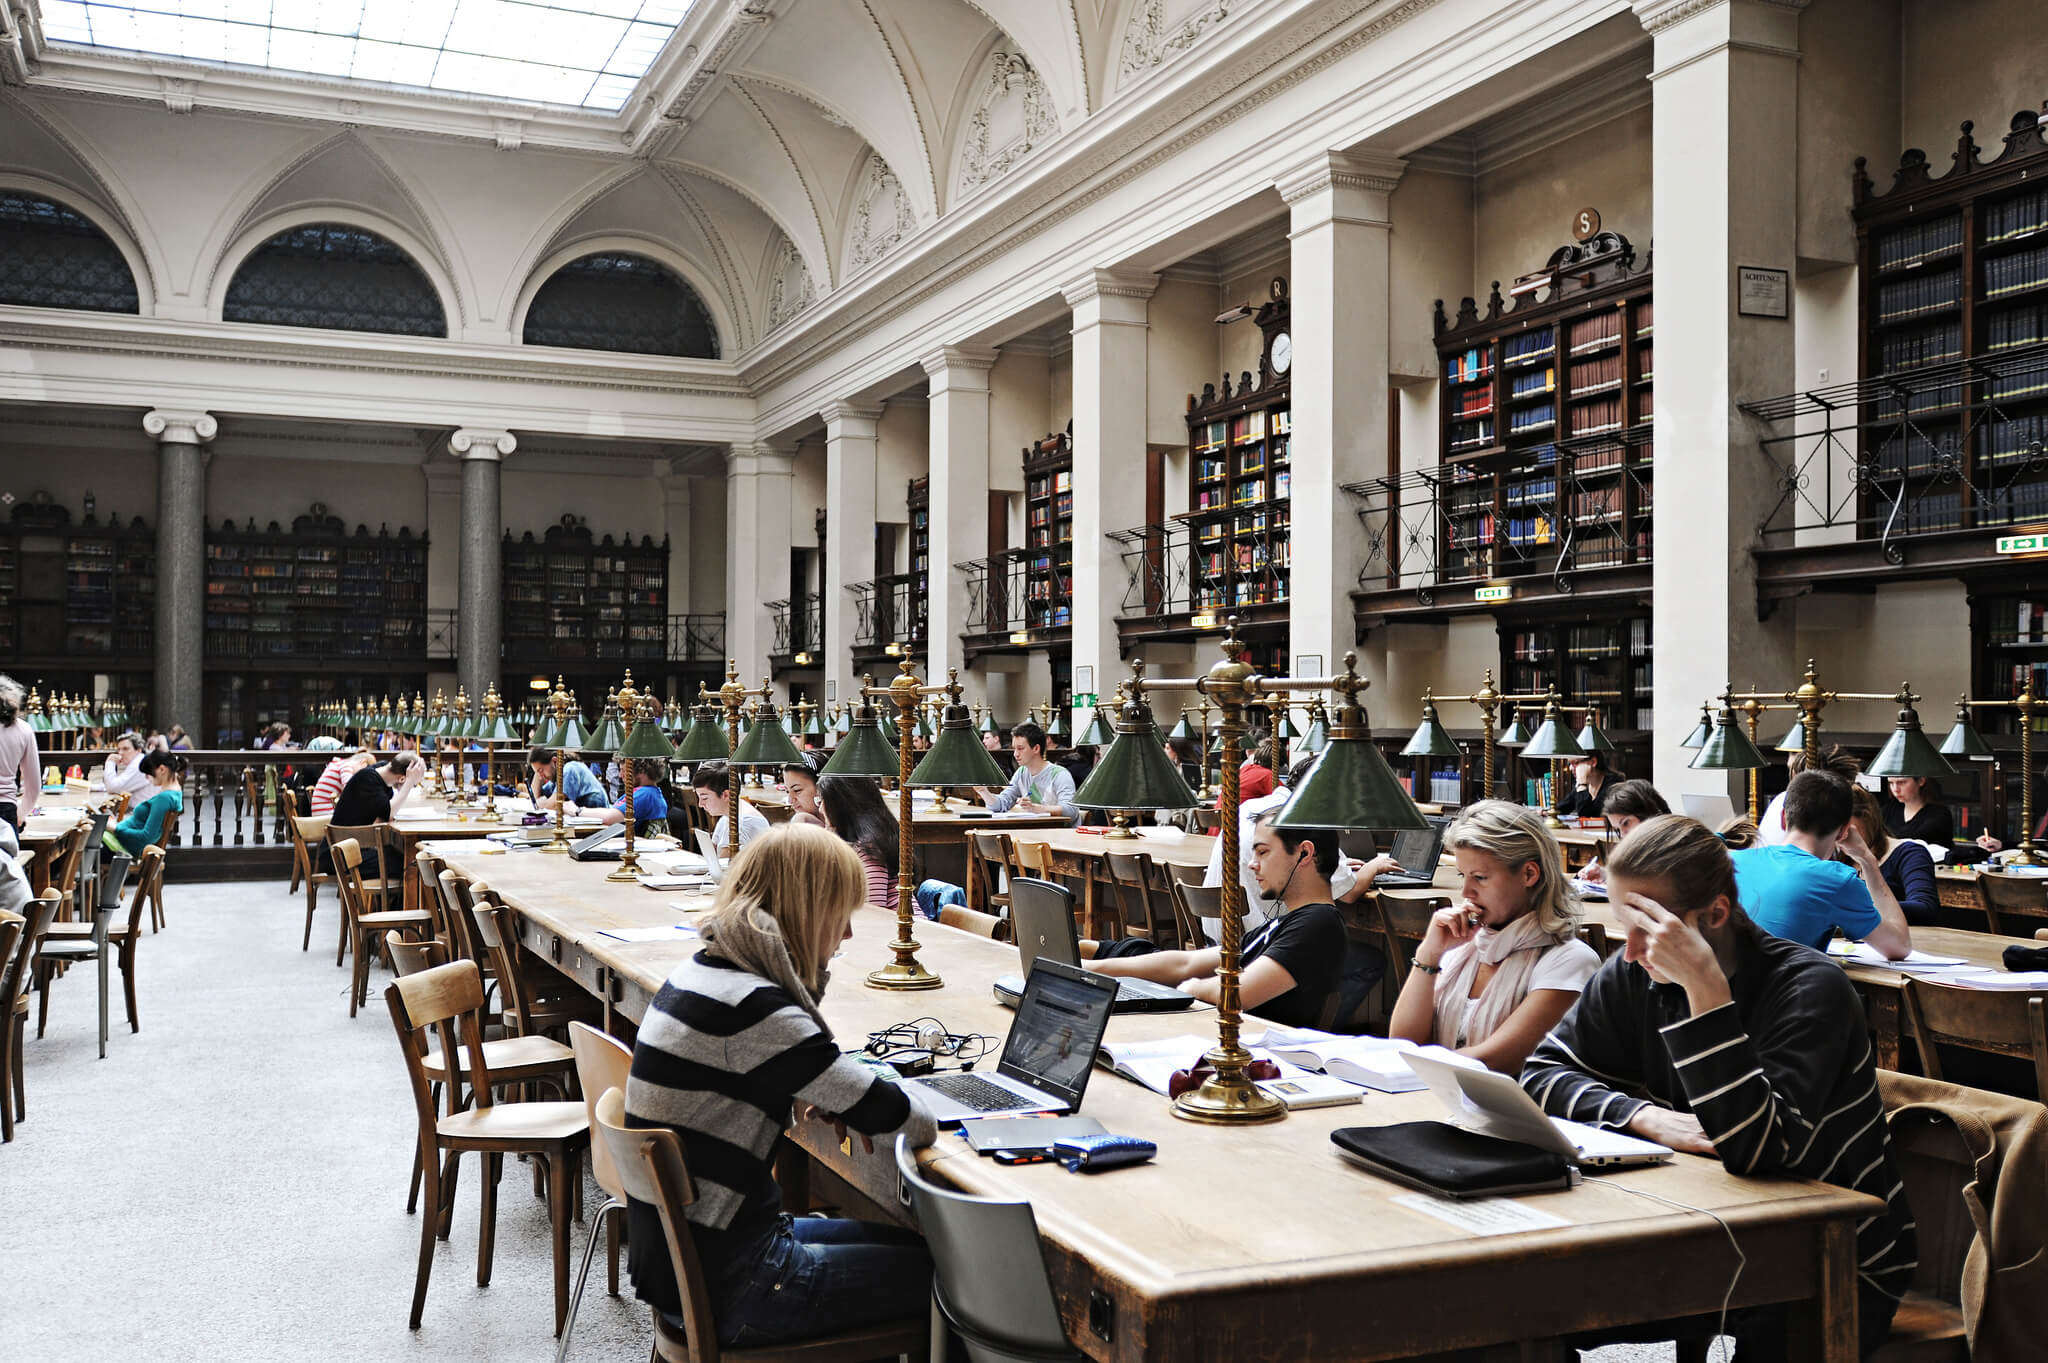 tu wien bibliothek dissertationen How to write a thesis for a narrative essay keywords antonin artaud theatre and its double analysis essay cynthia ozick essays quiz dissertation abstracts.